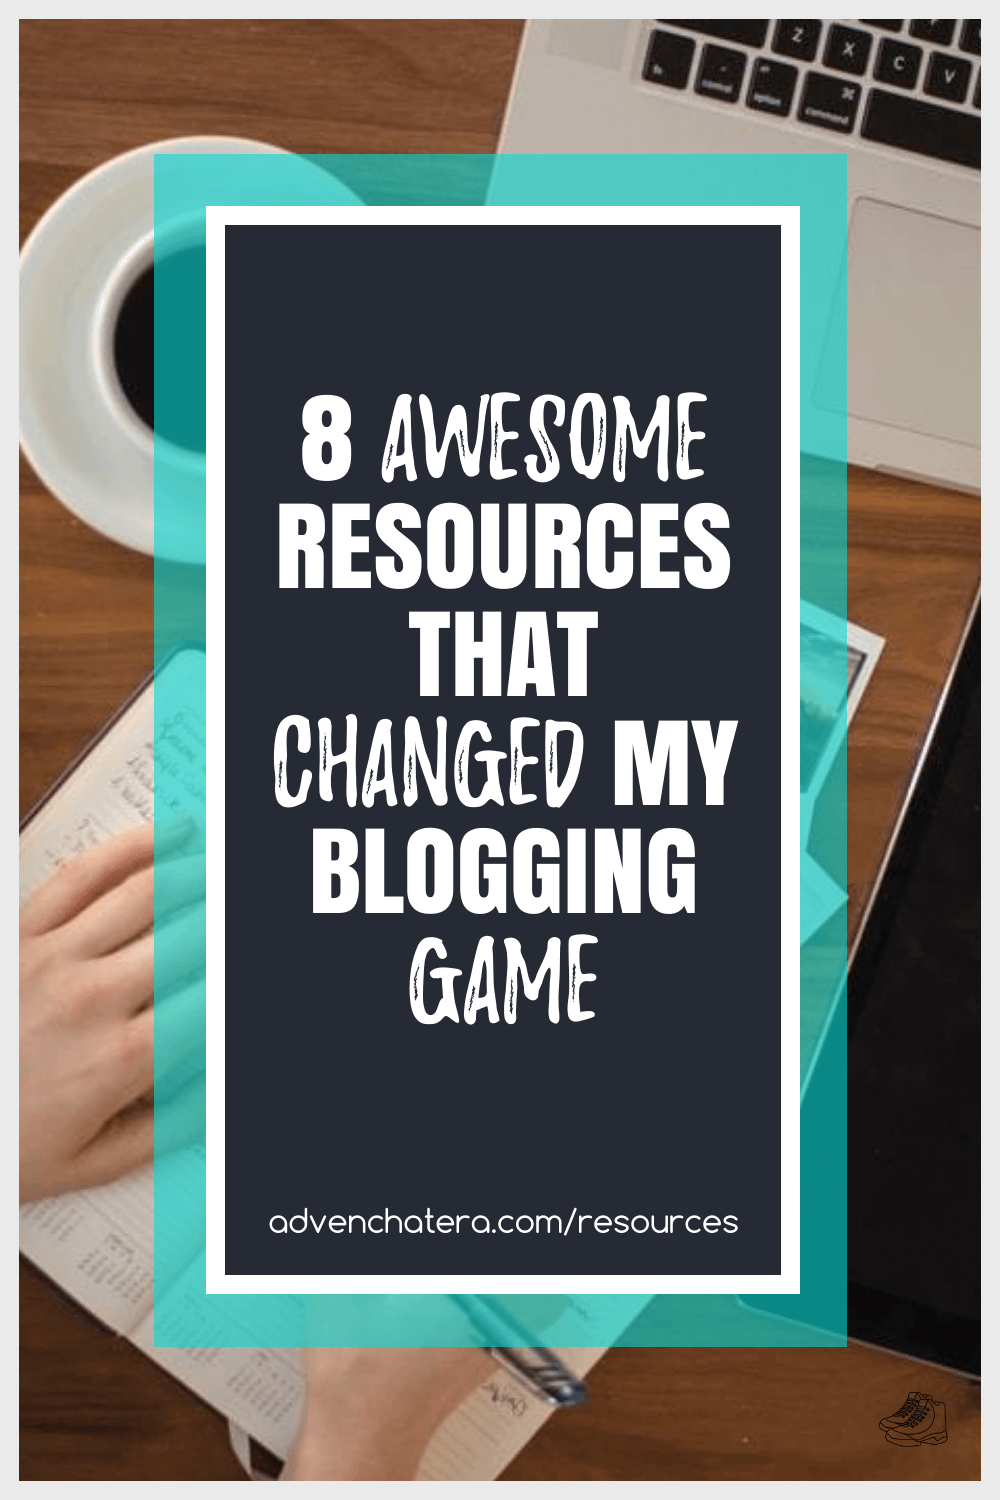 I started this blog in 2017 and GAVE UP until I found these fantastic resources that changed everything. In 2020, I gave it round two and released it within 2 months. It was a whole dang lot of work and I had no idea where to even begin and mostly just floated around in overwhelm and confusion until I found this. Every beginner blogger needs something to start with and this is how I got my blog up and running and earning money. #blogging #motivation via @advenchatera via @advenchatera